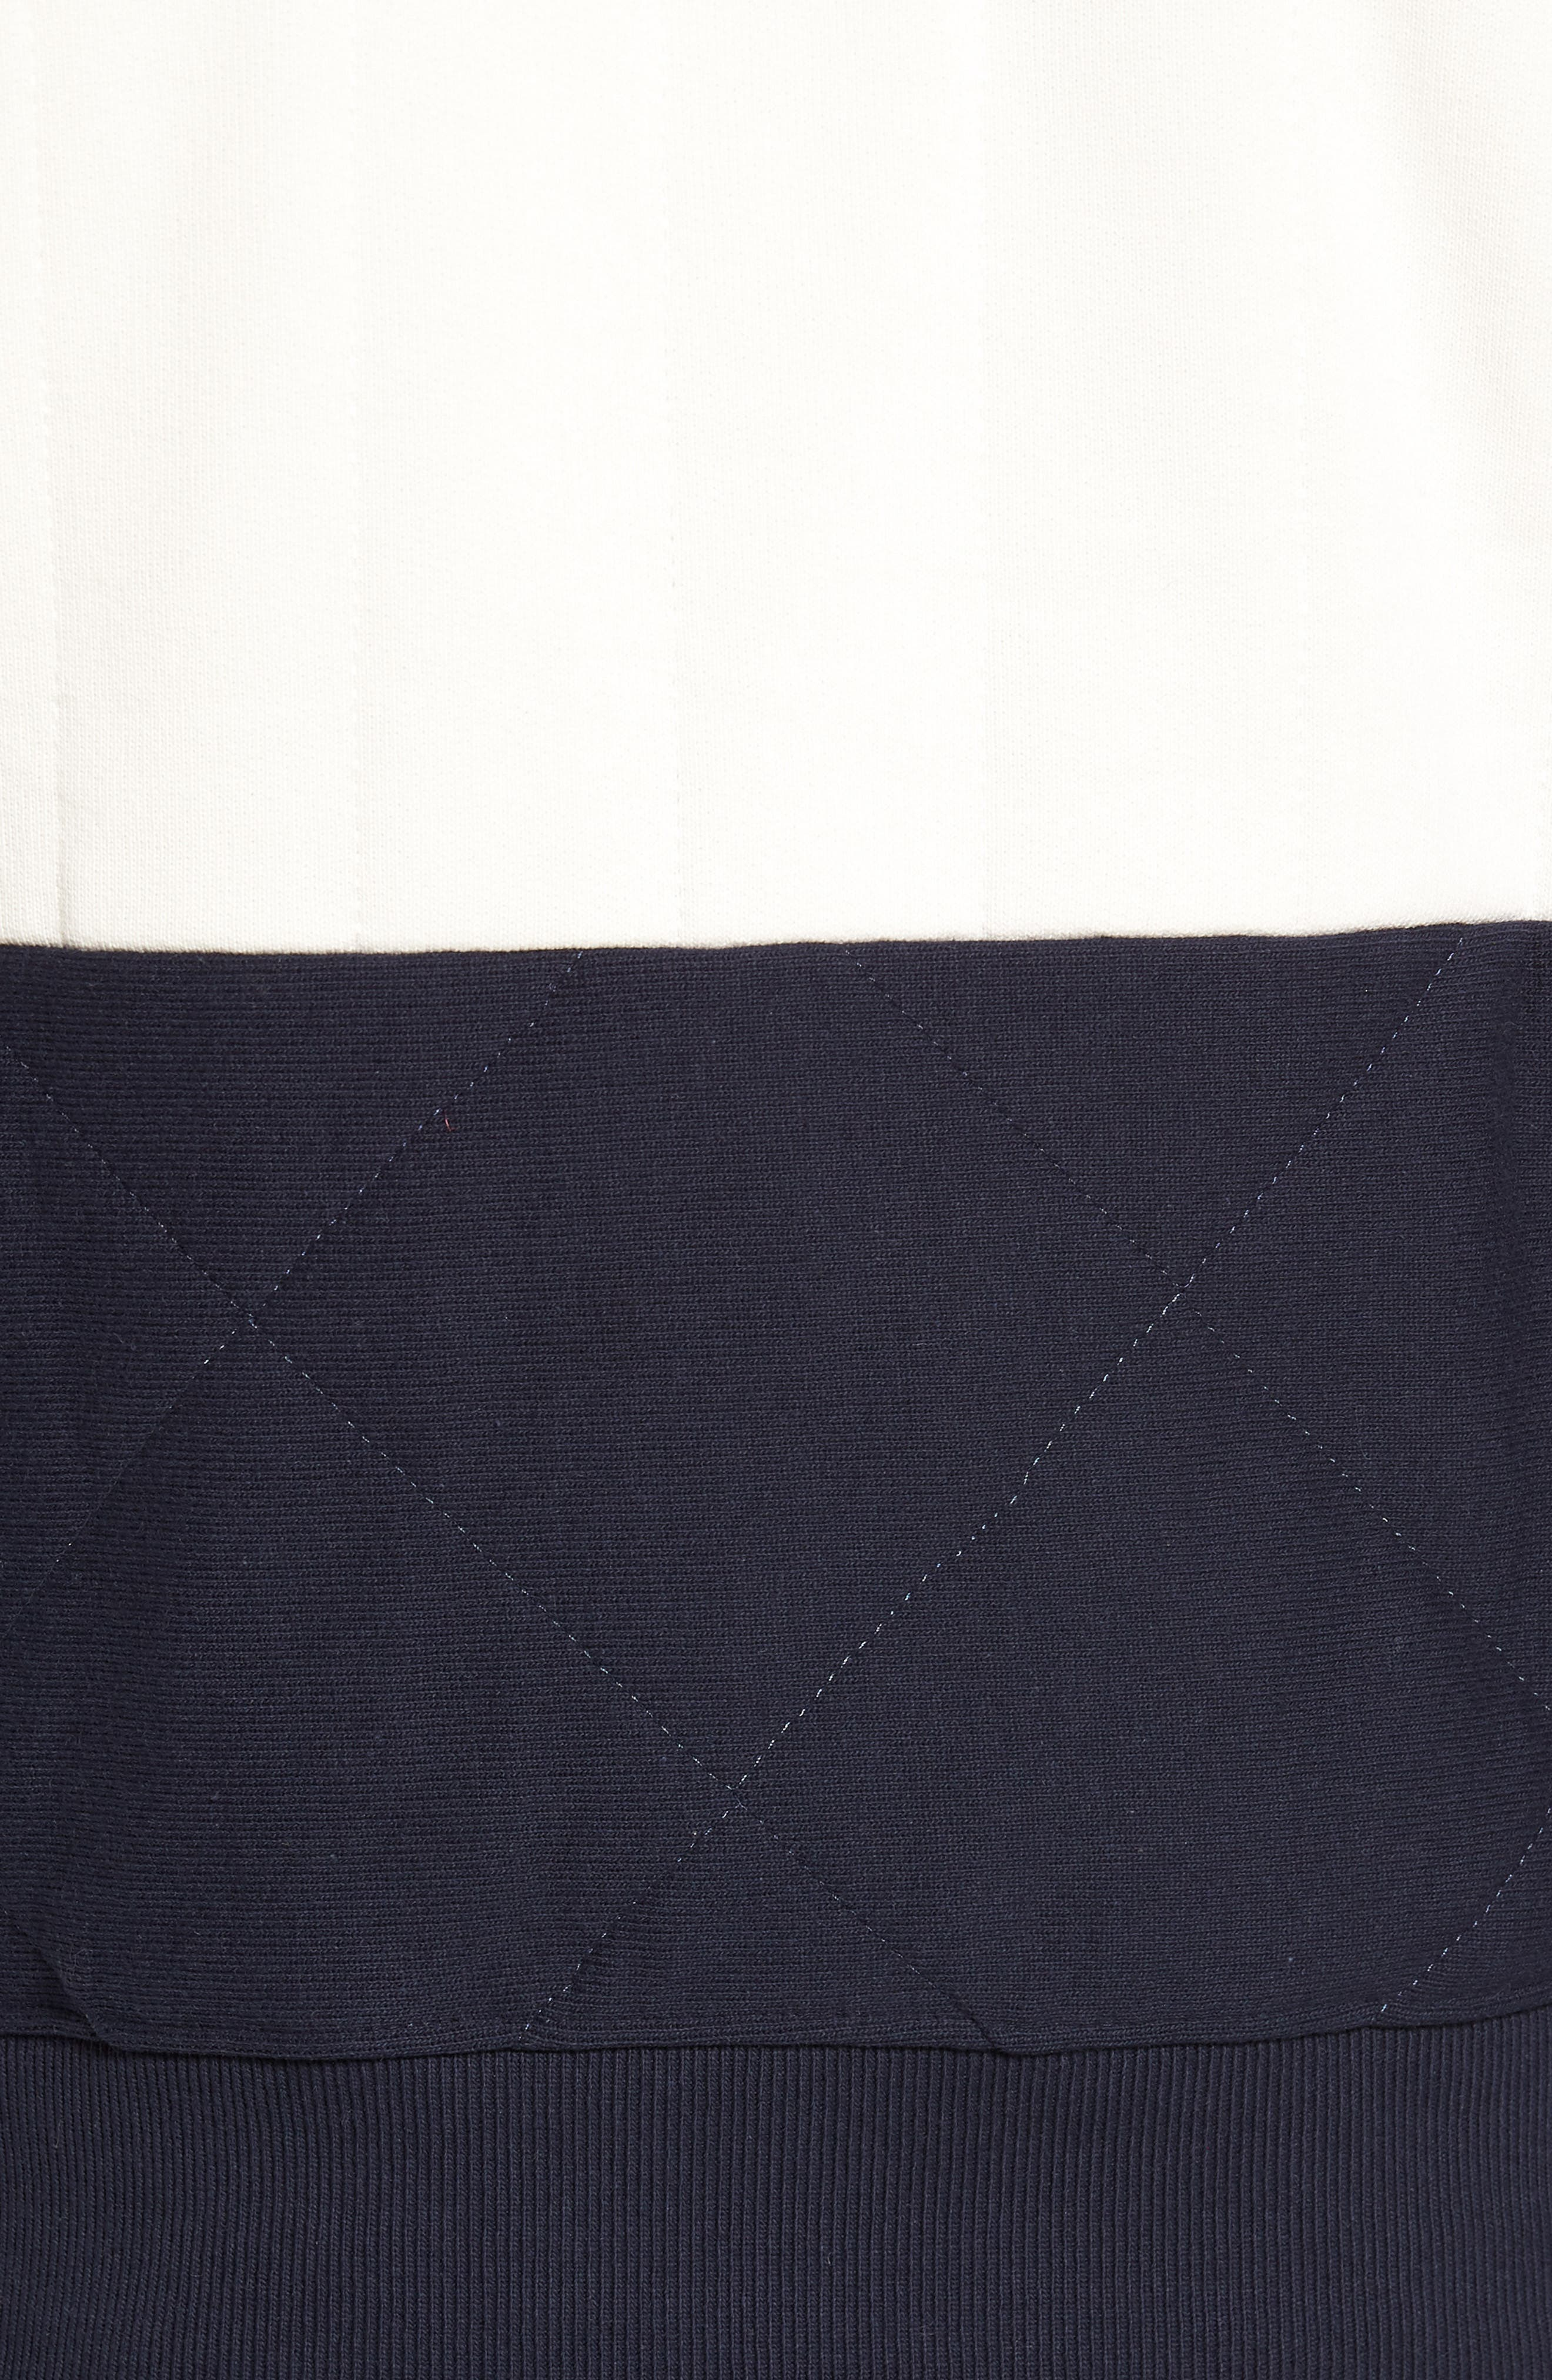 Quilted Colorblock Sweatshirt,                             Alternate thumbnail 6, color,                             930